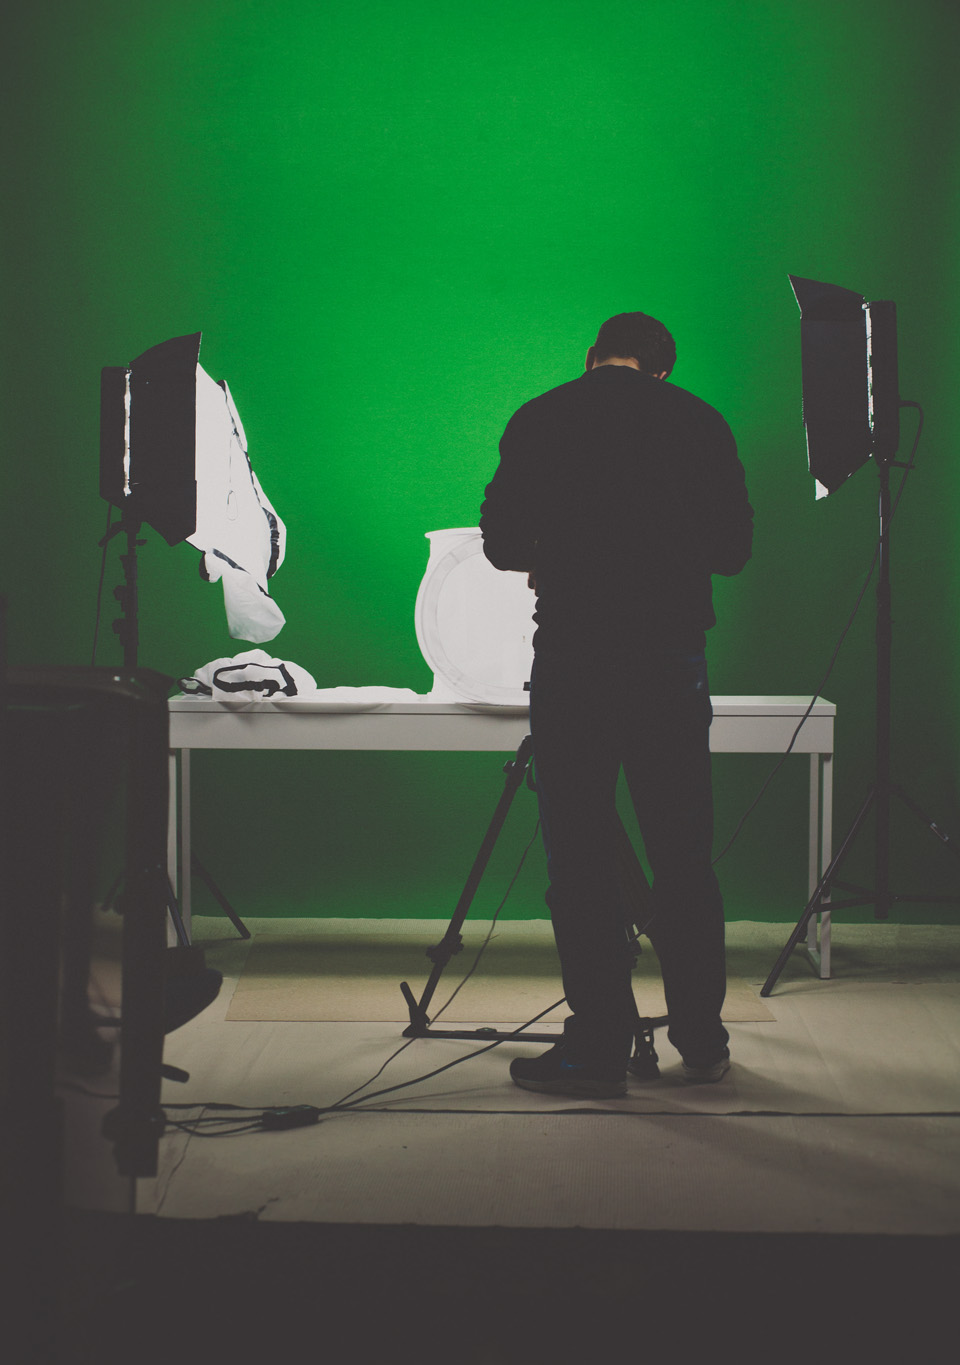 Top secret stuff is going on in that green screen room.